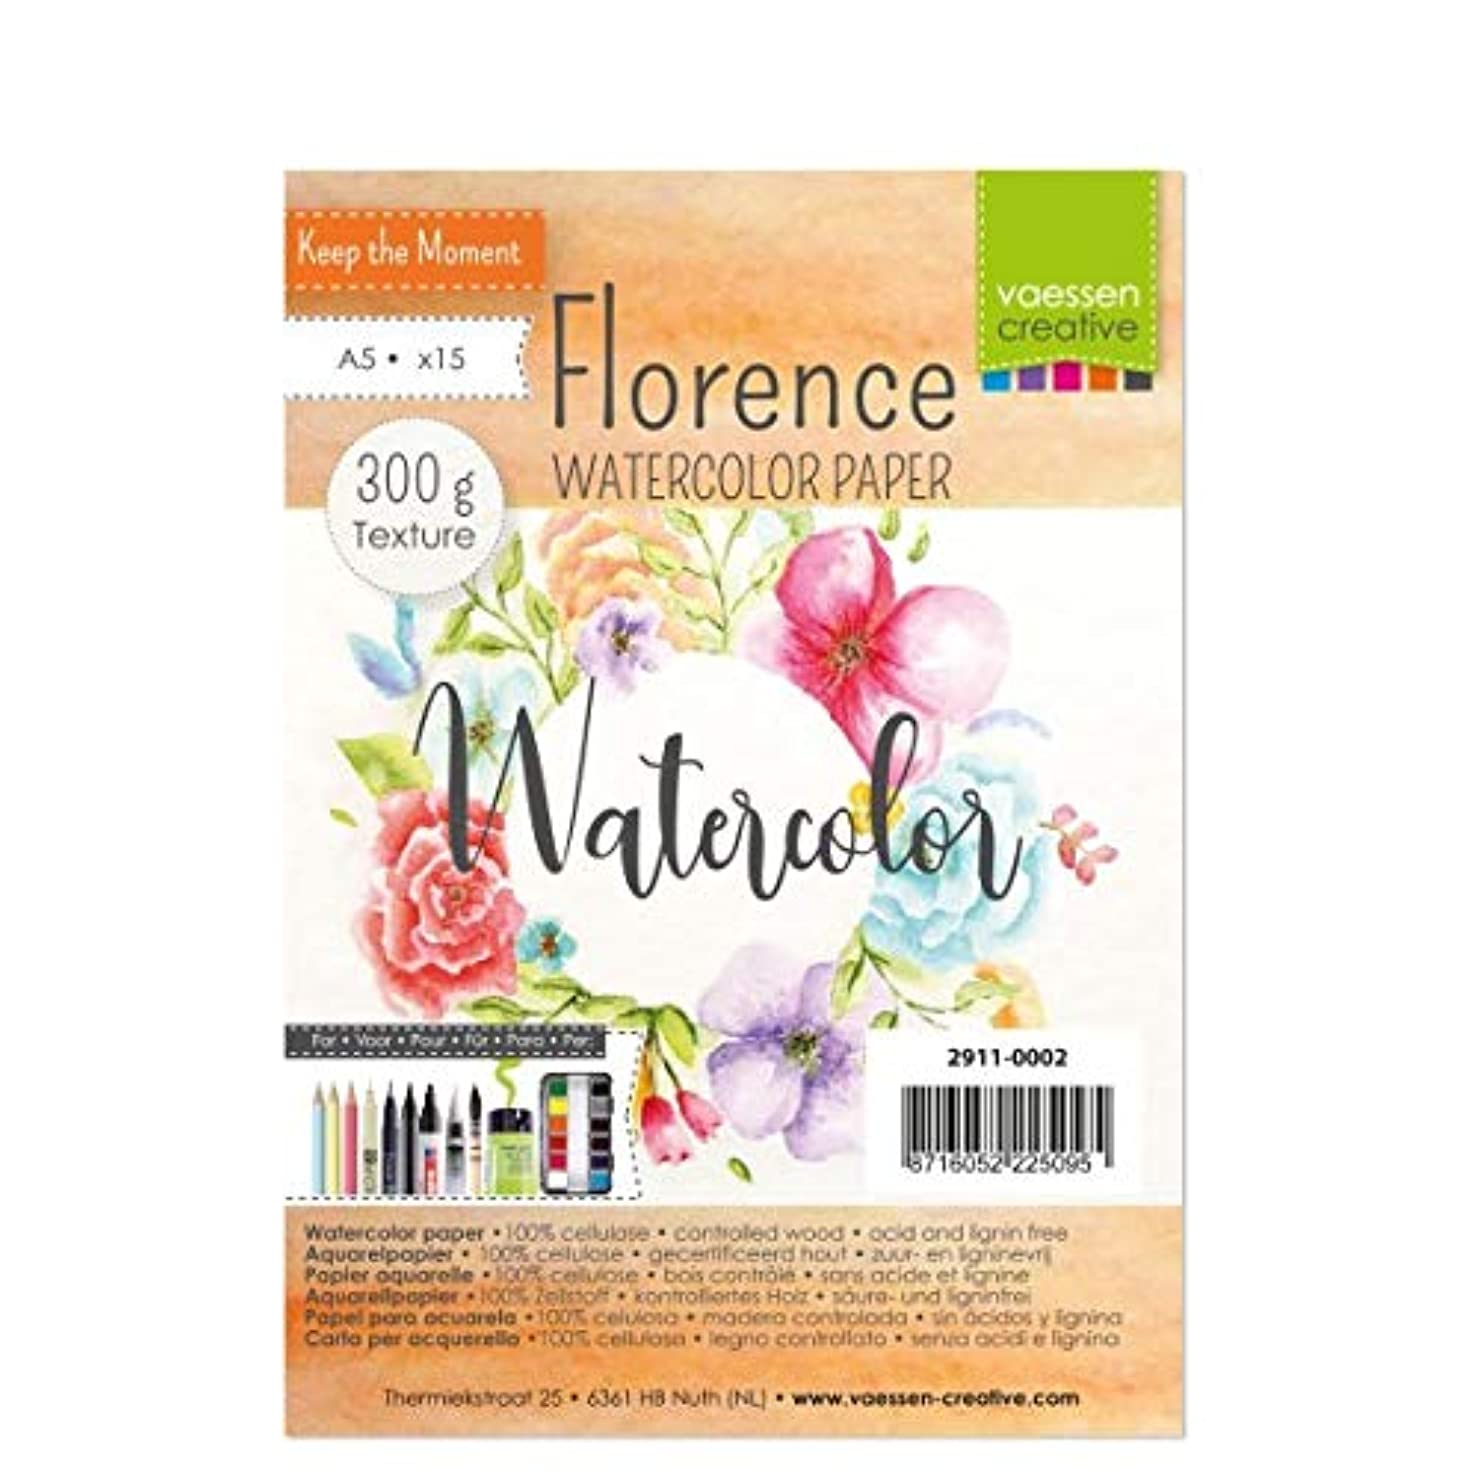 Vaessen Creative Florence Watercolour Paper A5, Ivory, 300 GSM, Artist Grade Quality, Textured Surface, 15 Sheets for Painting, Handlettering, Art Projects